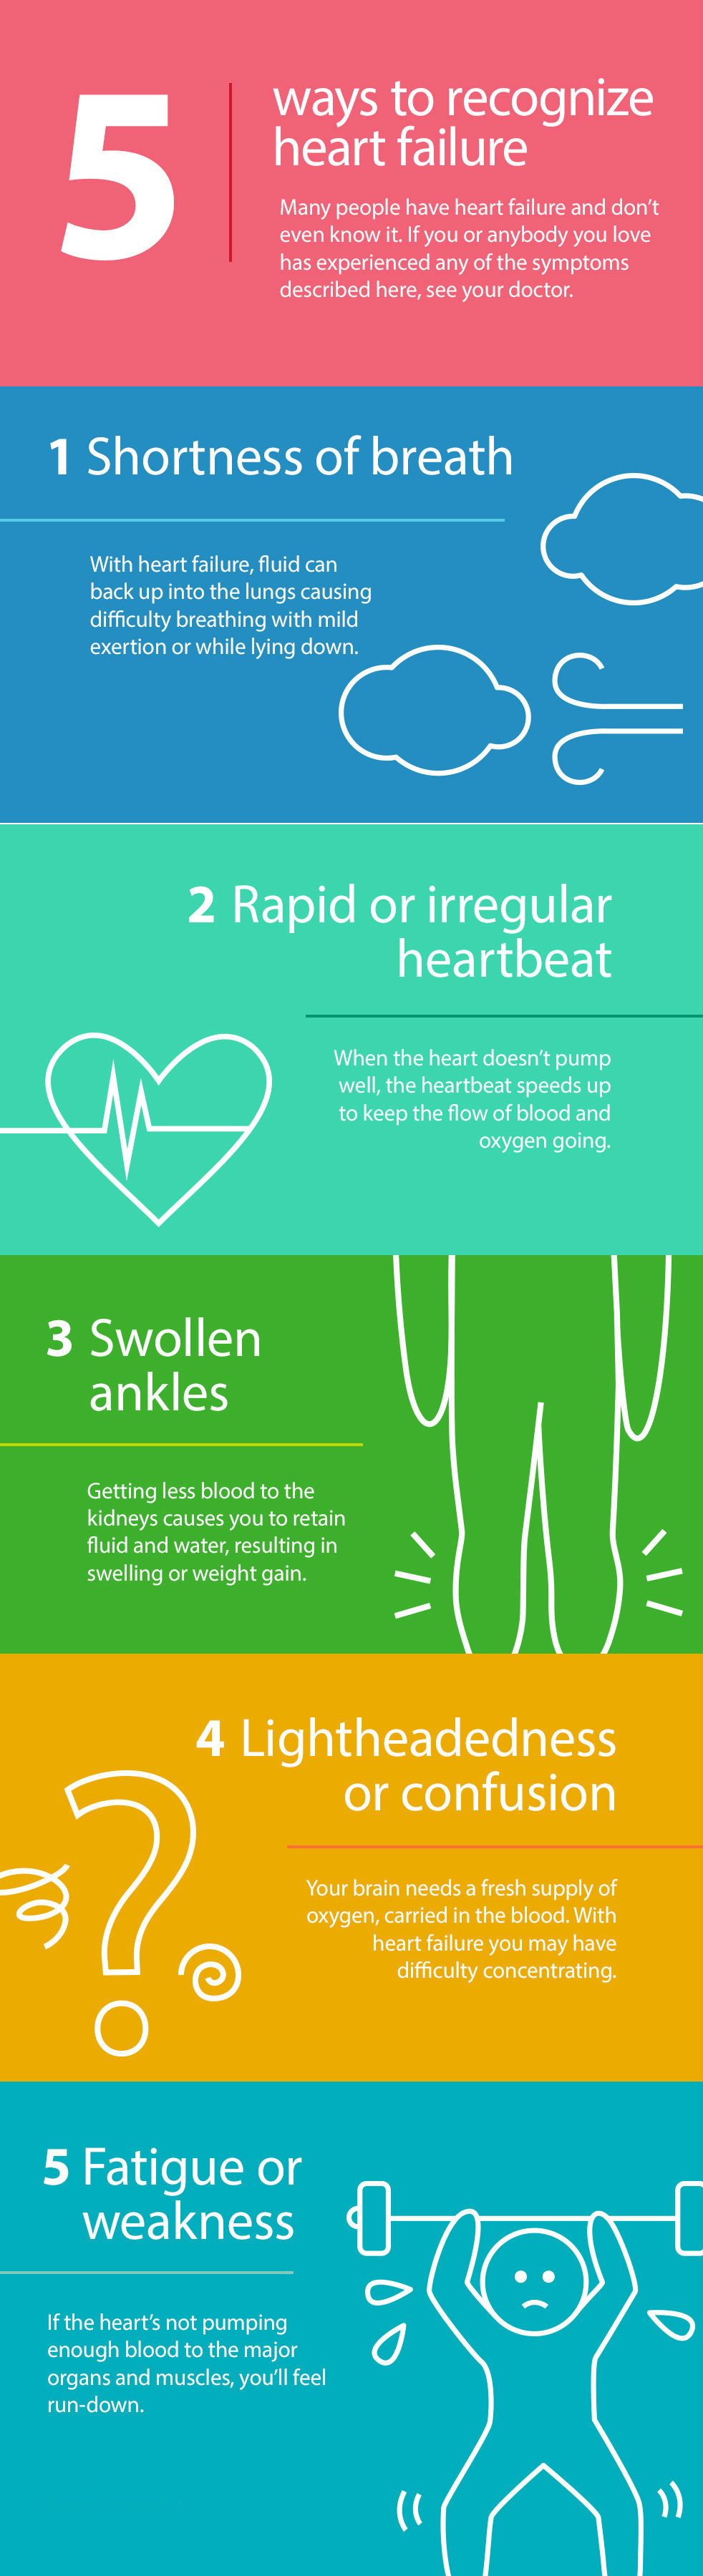 083-14899-9_Heart Failure 5 Tips Infographic FY18_RLSD